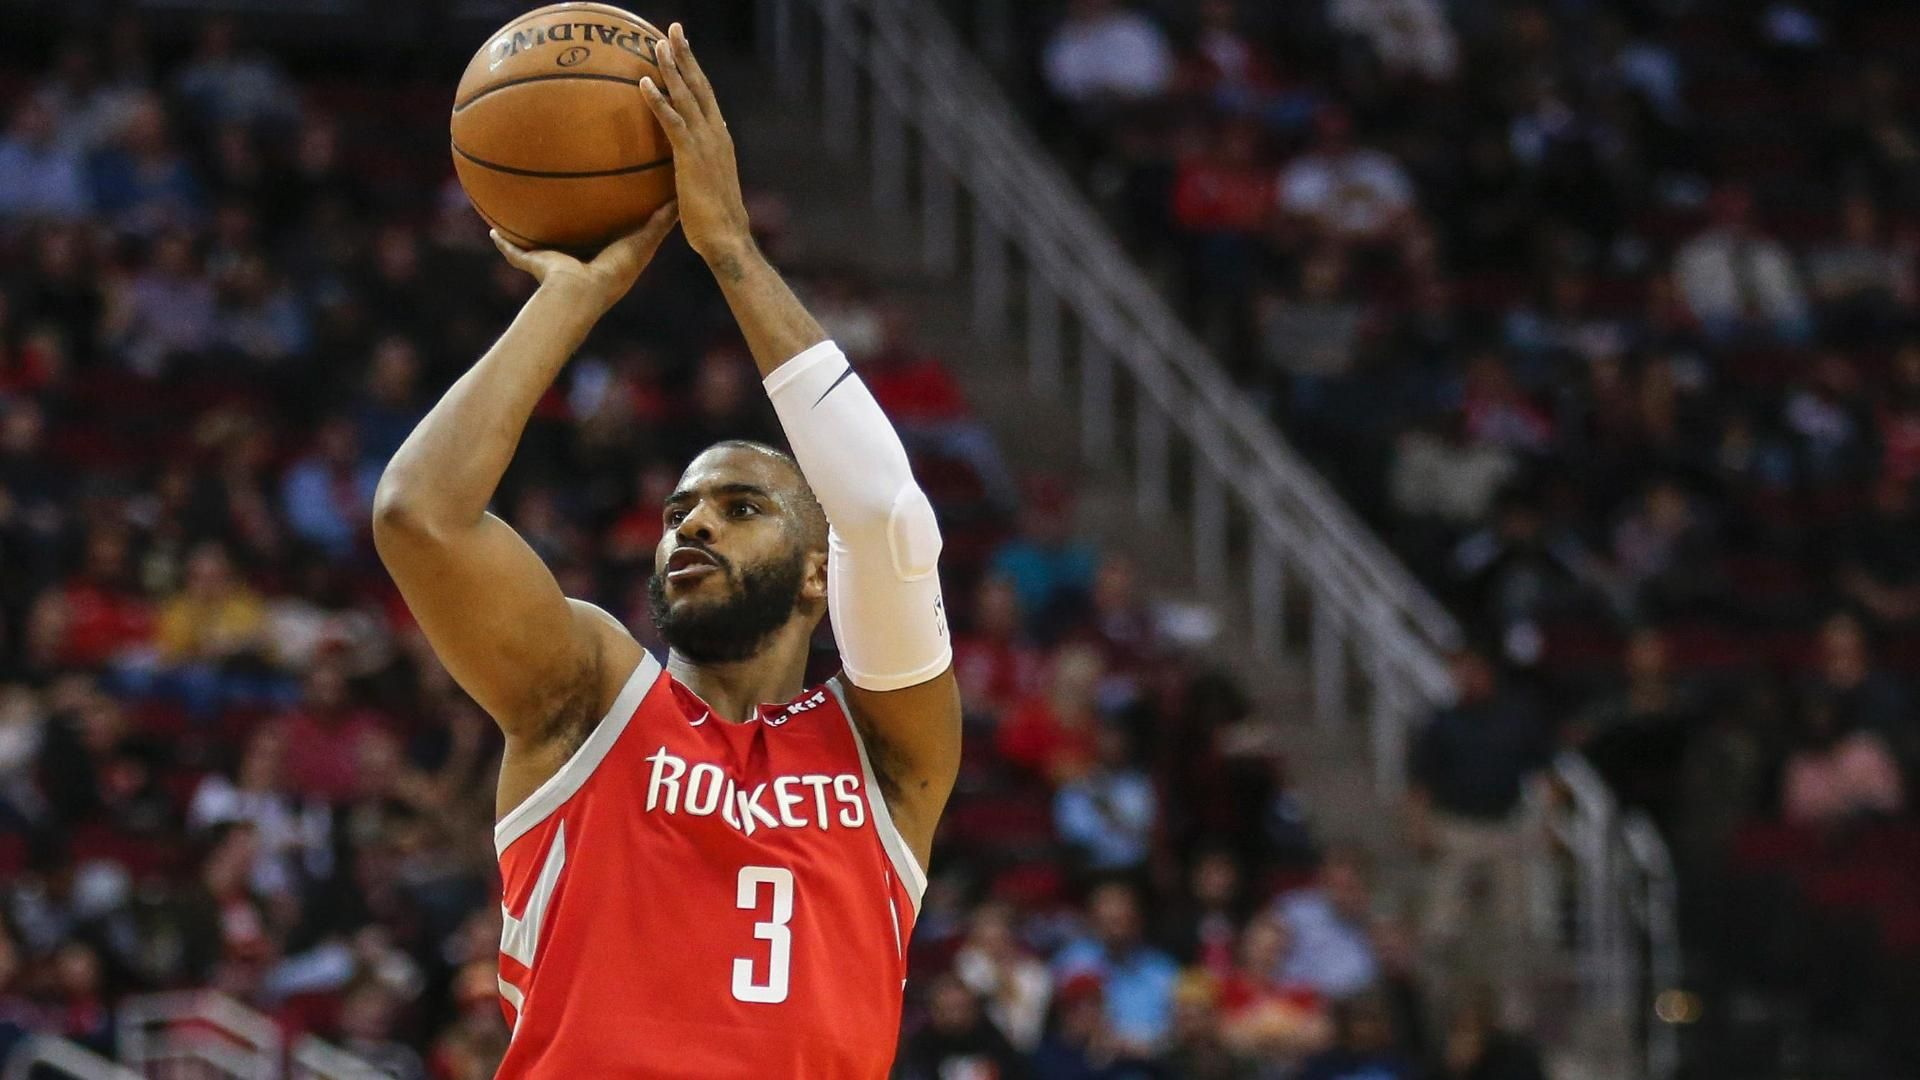 Rockets drain NBA record 26 3-pointers